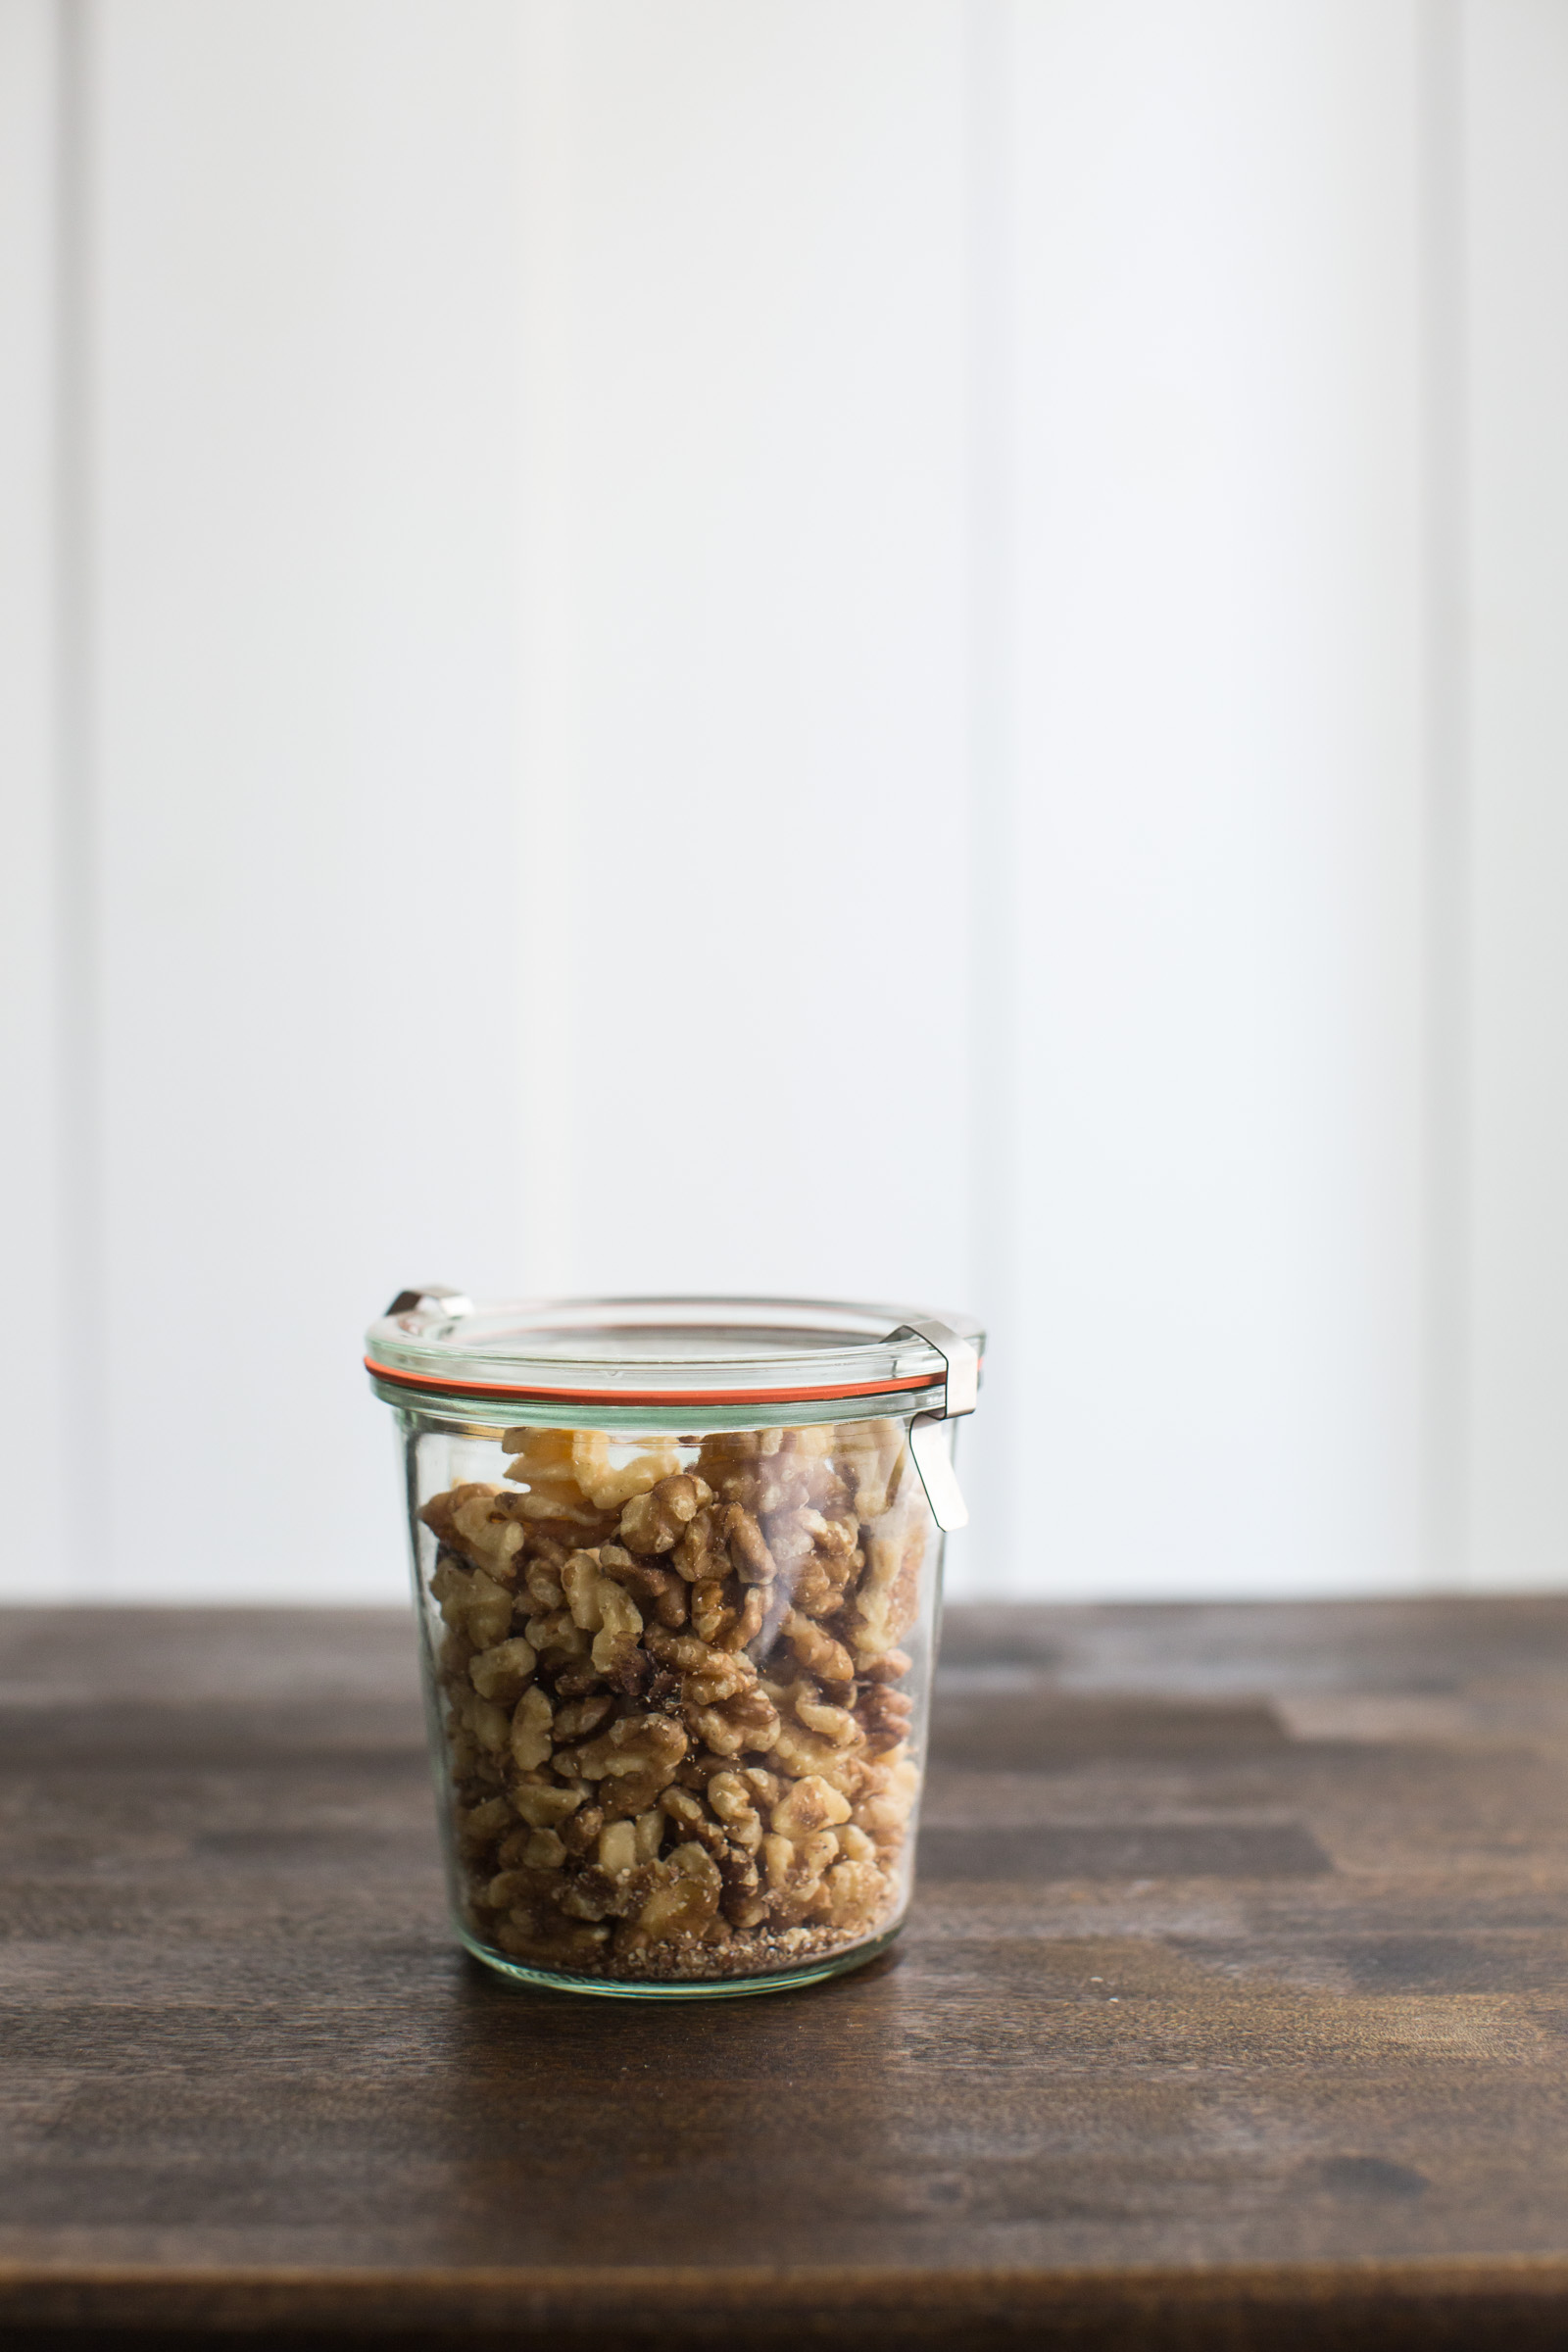 Walnuts - Nuts and Seeds - Stock a Pantry